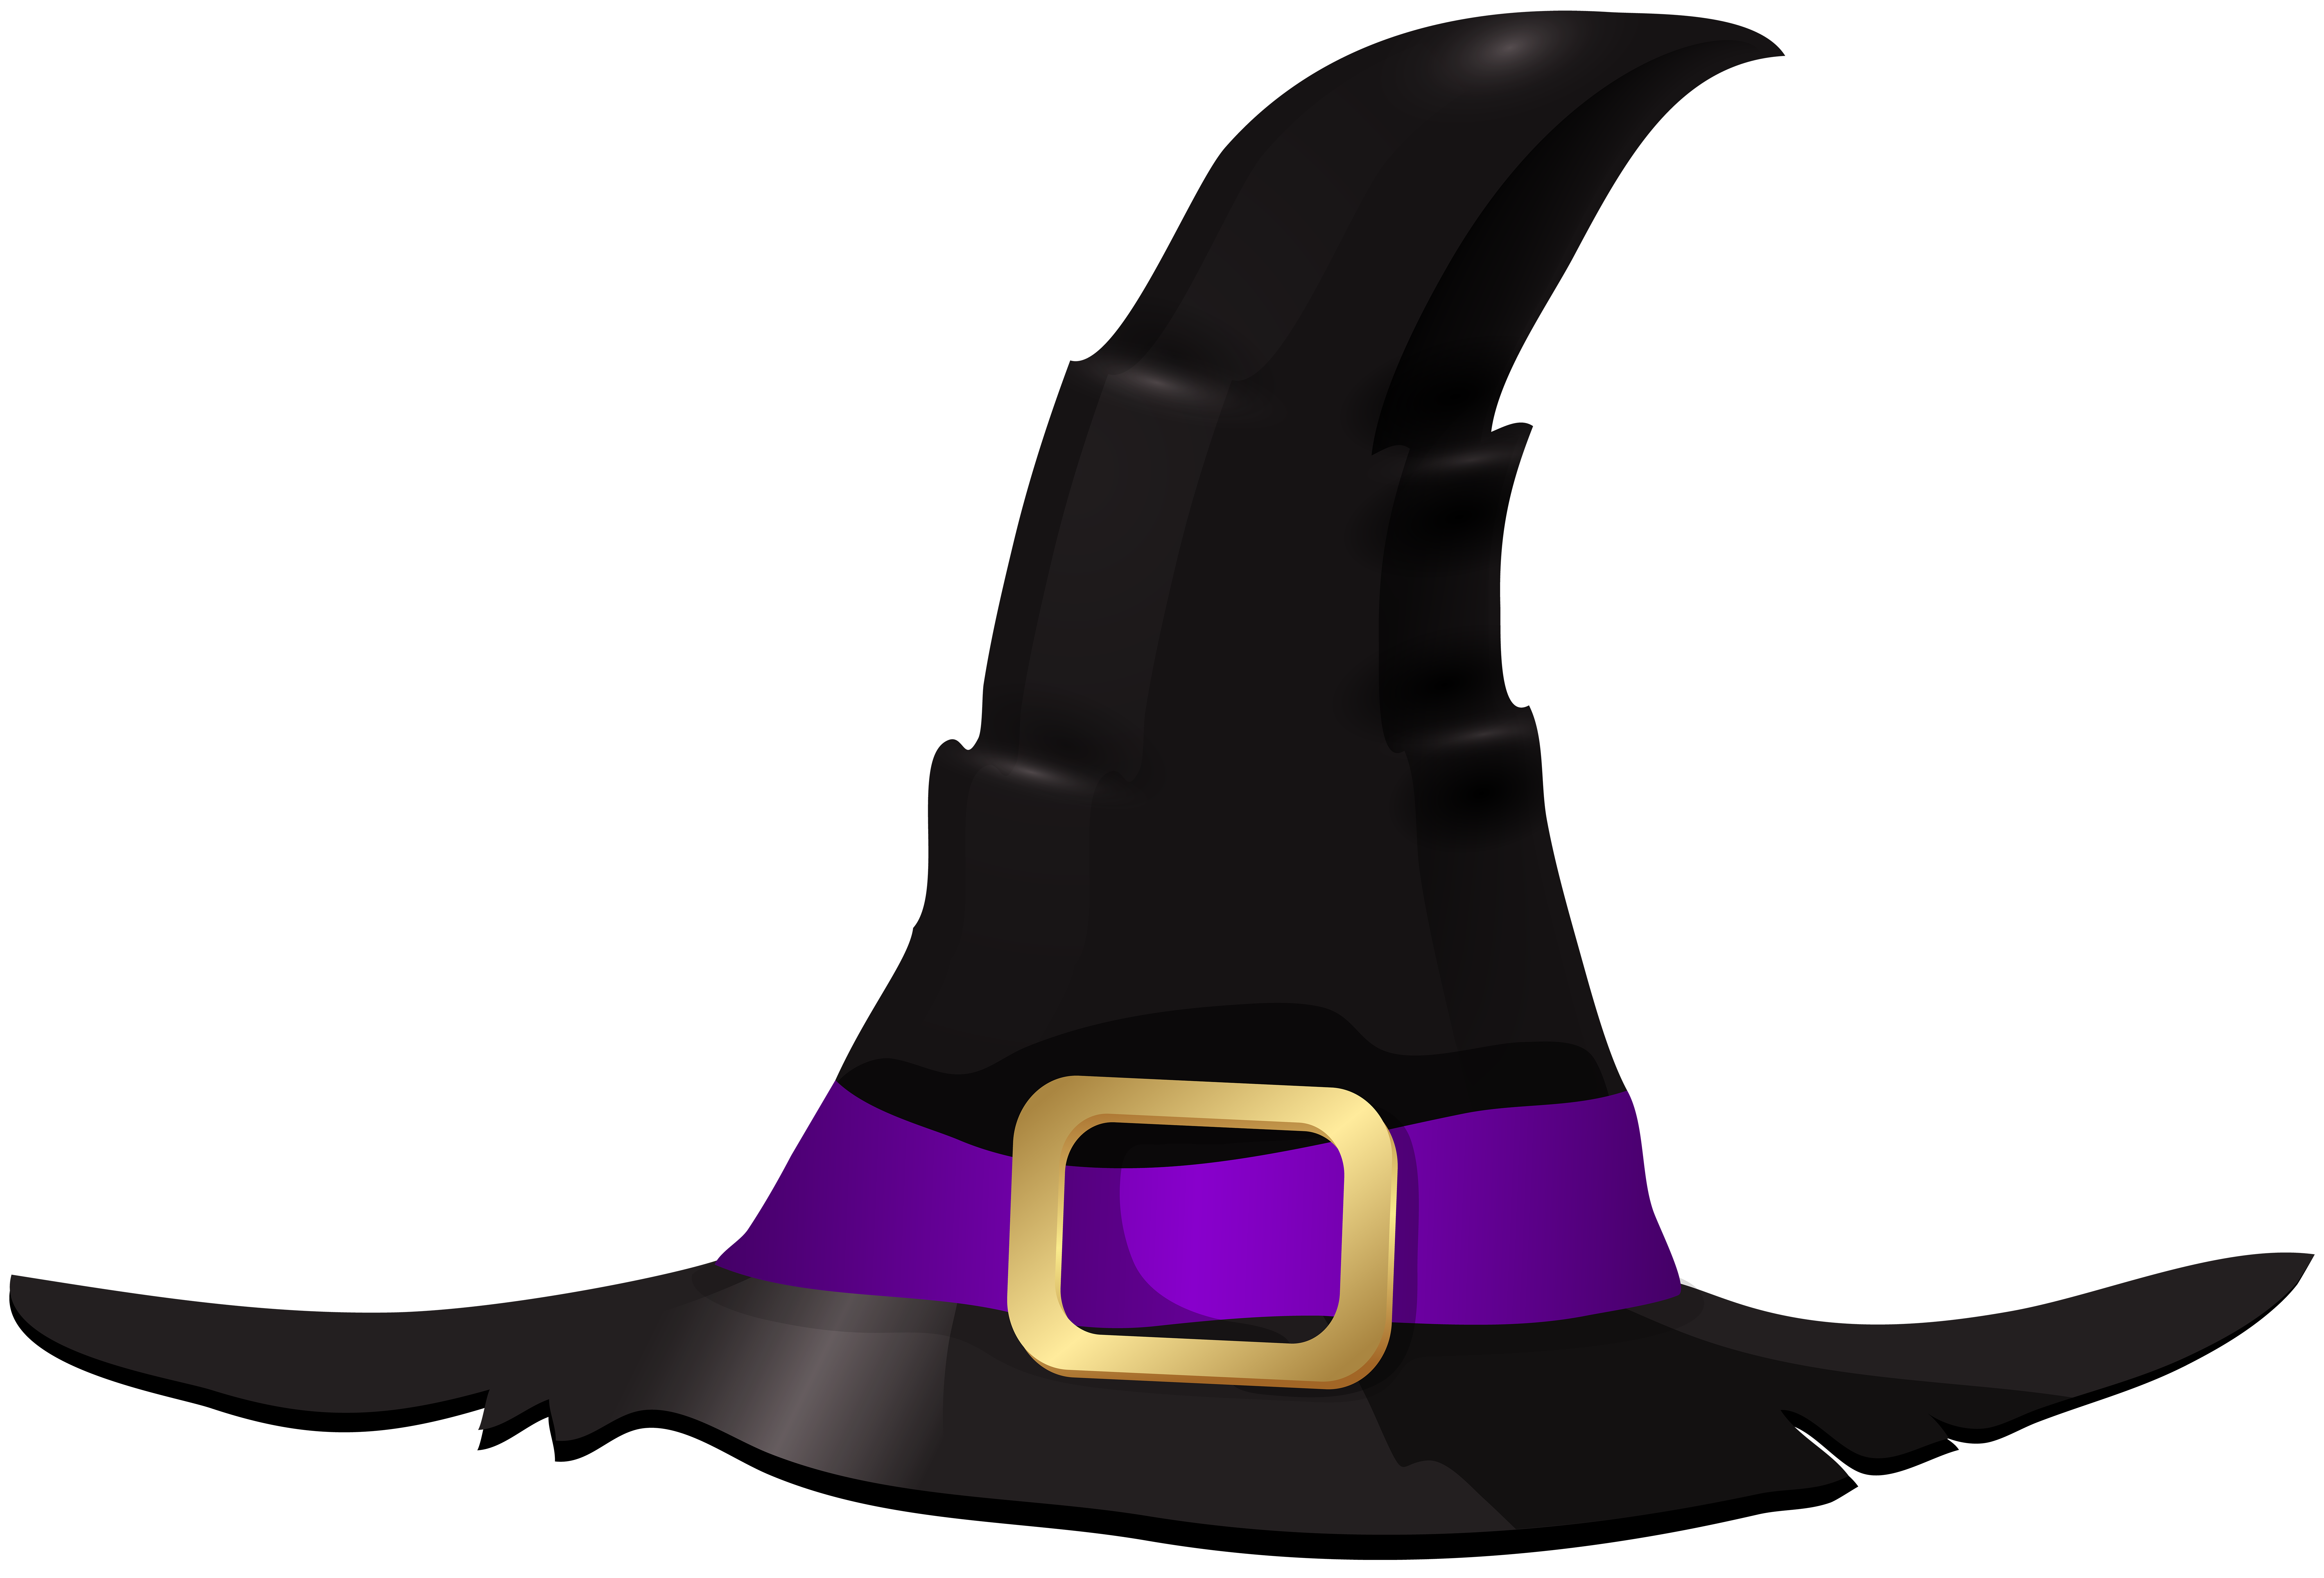 Halloween witch hat clipart black and white stock Halloween Witch Hat Png Image | jokingart.com Witch Hat Clipart black and white stock